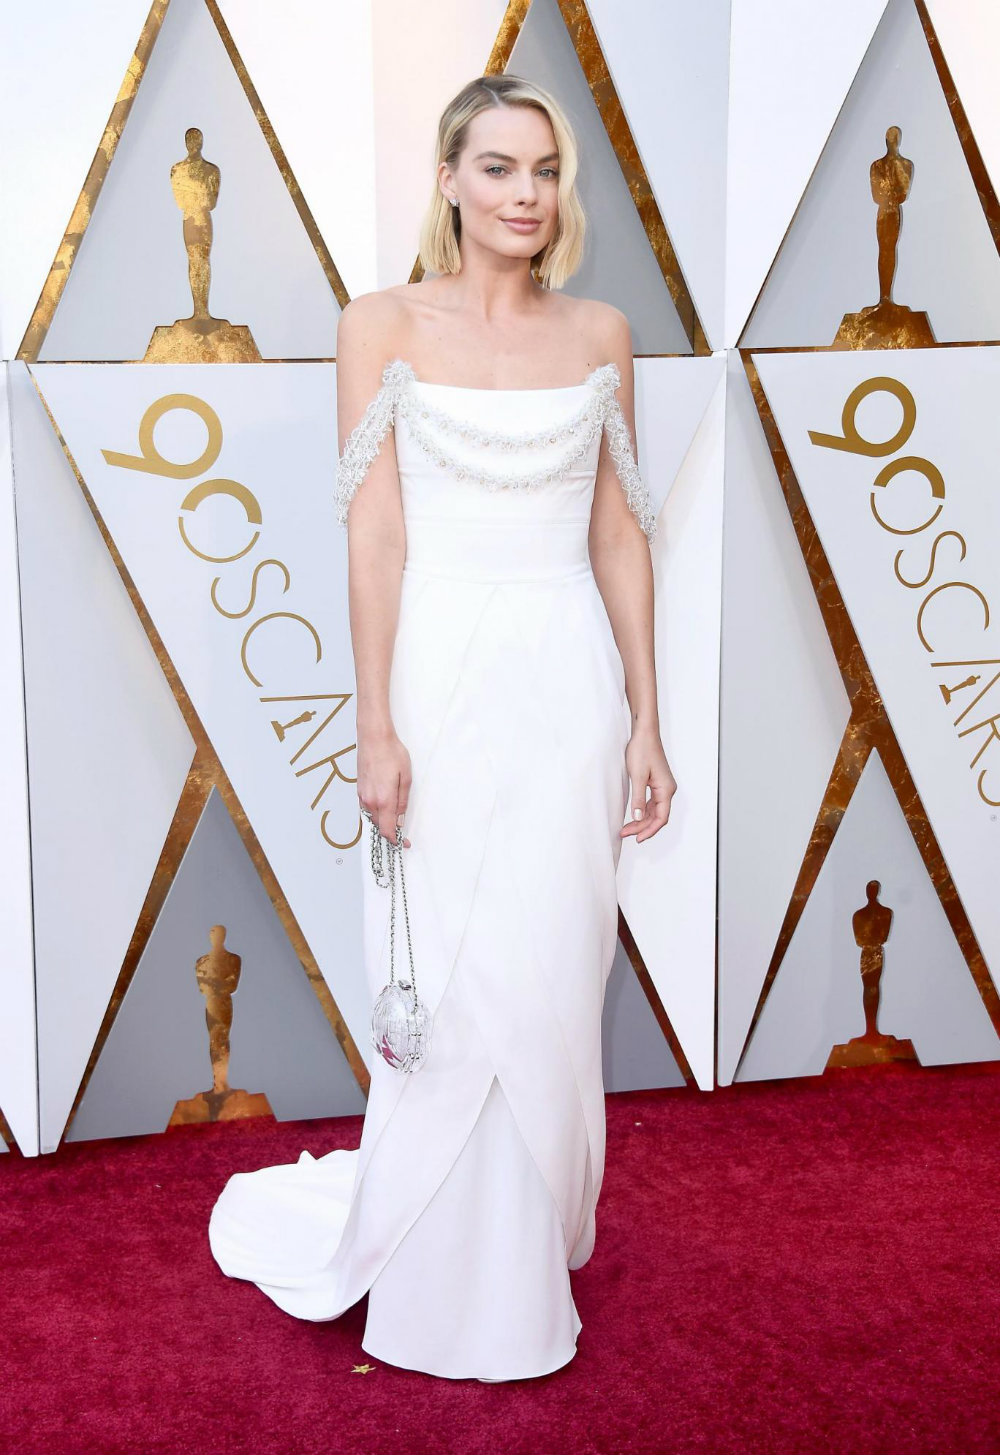 Oscars 2018 Best Dressed Celebrities on the Red Carpet 05 Oscars 2018 Oscars 2018: Best Dressed Celebrities on the Red Carpet Oscars 2018 Best Dressed Celebrities on the Red Carpet 05